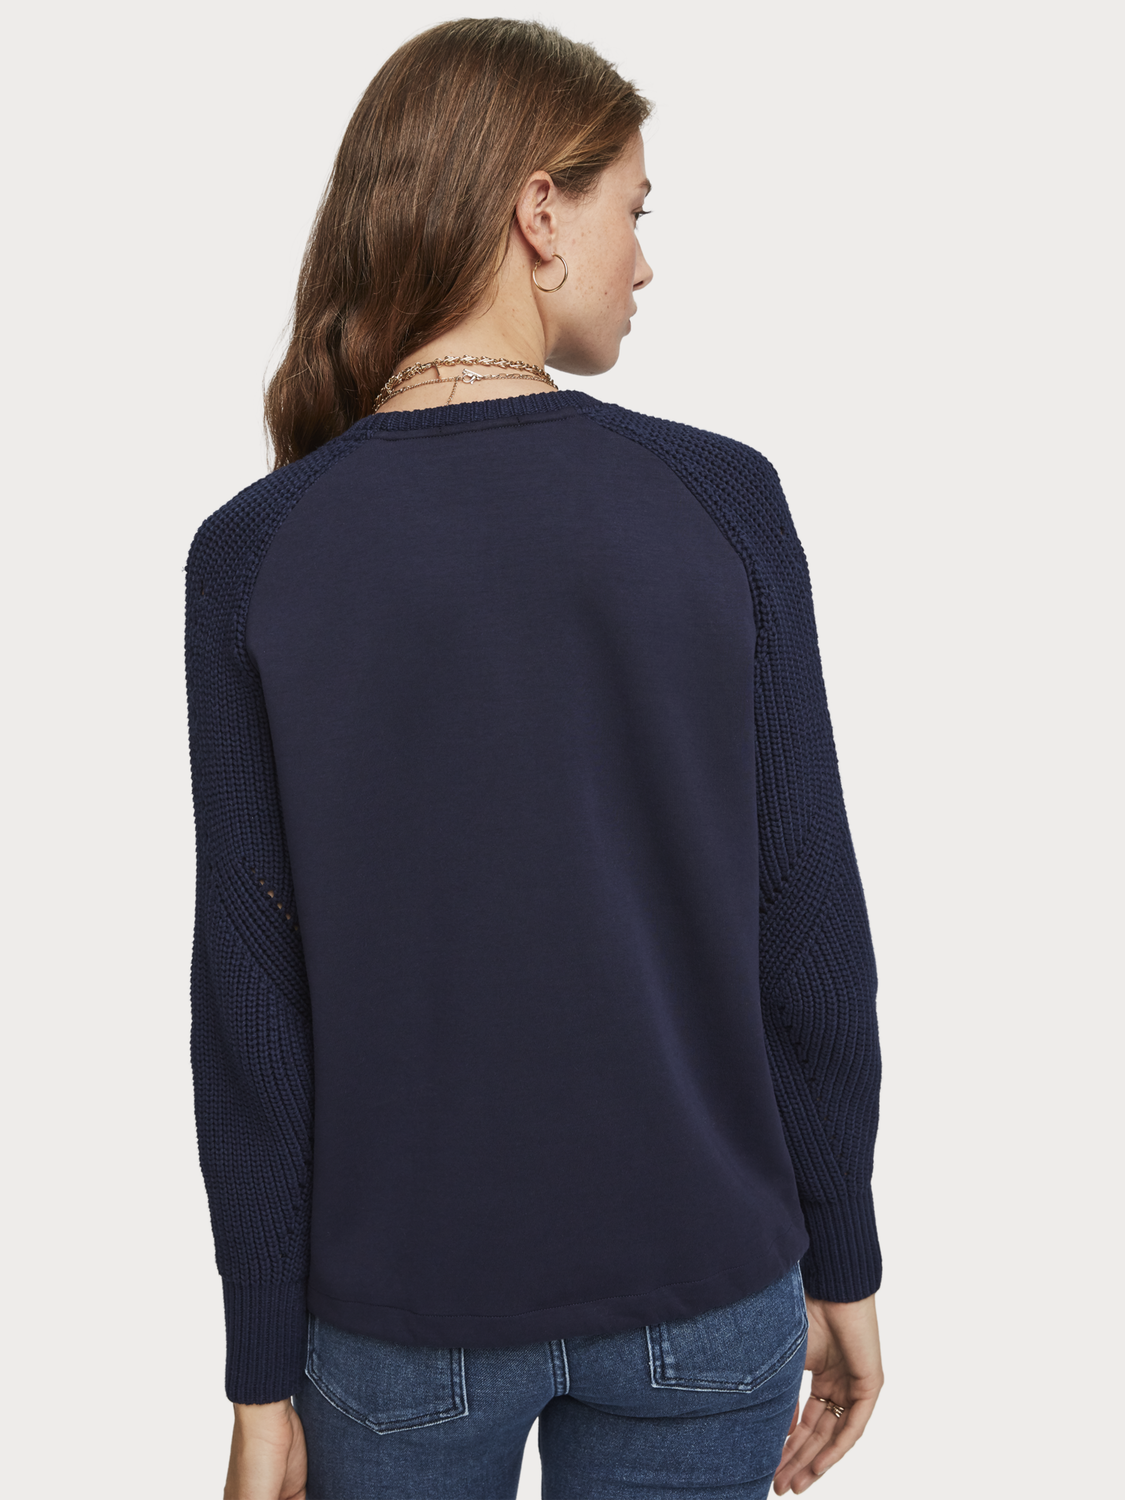 Women Mixed Crew Neck Sweater